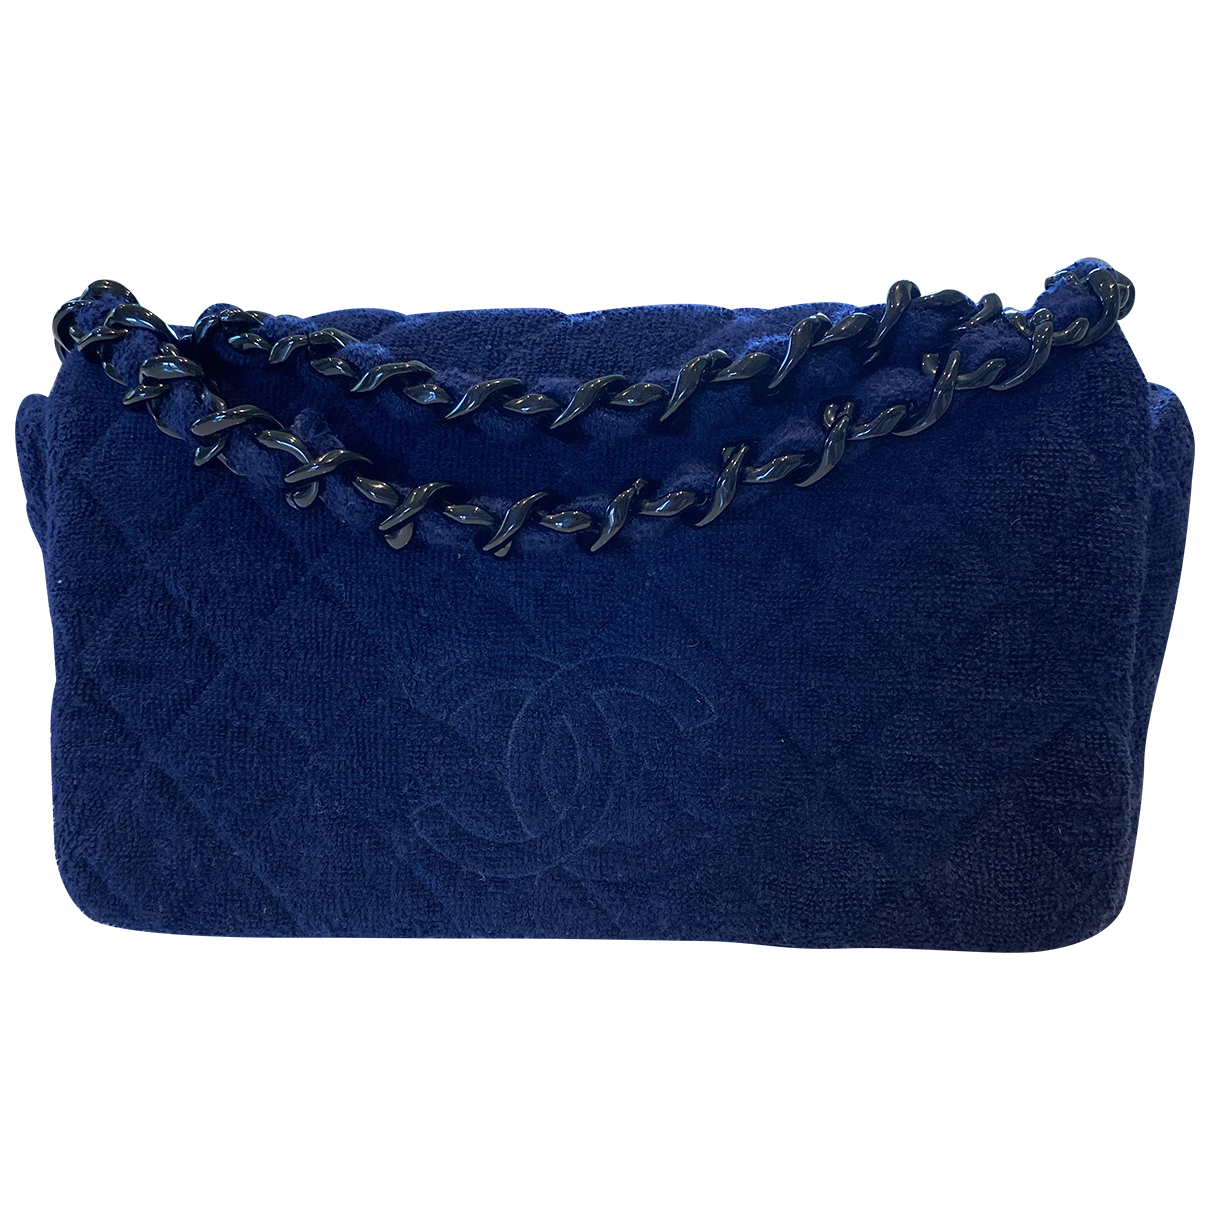 Chanel \N Blue Cotton handbag for Women \N